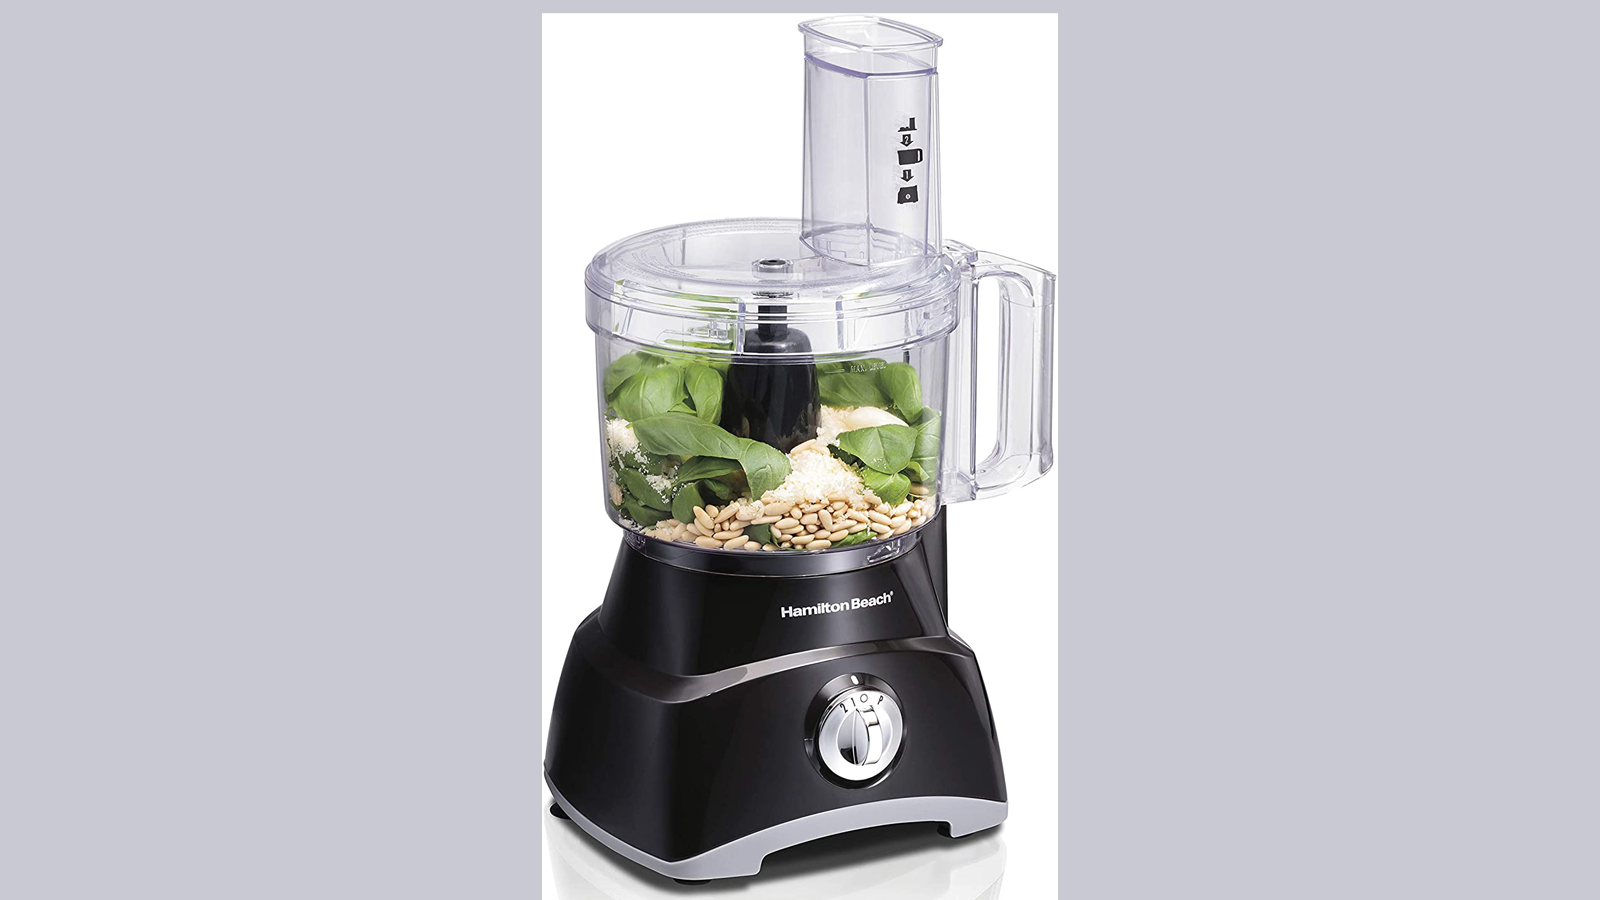 Get a Helping Hand in the Kitchen with a Hamilton Beach Food Processor